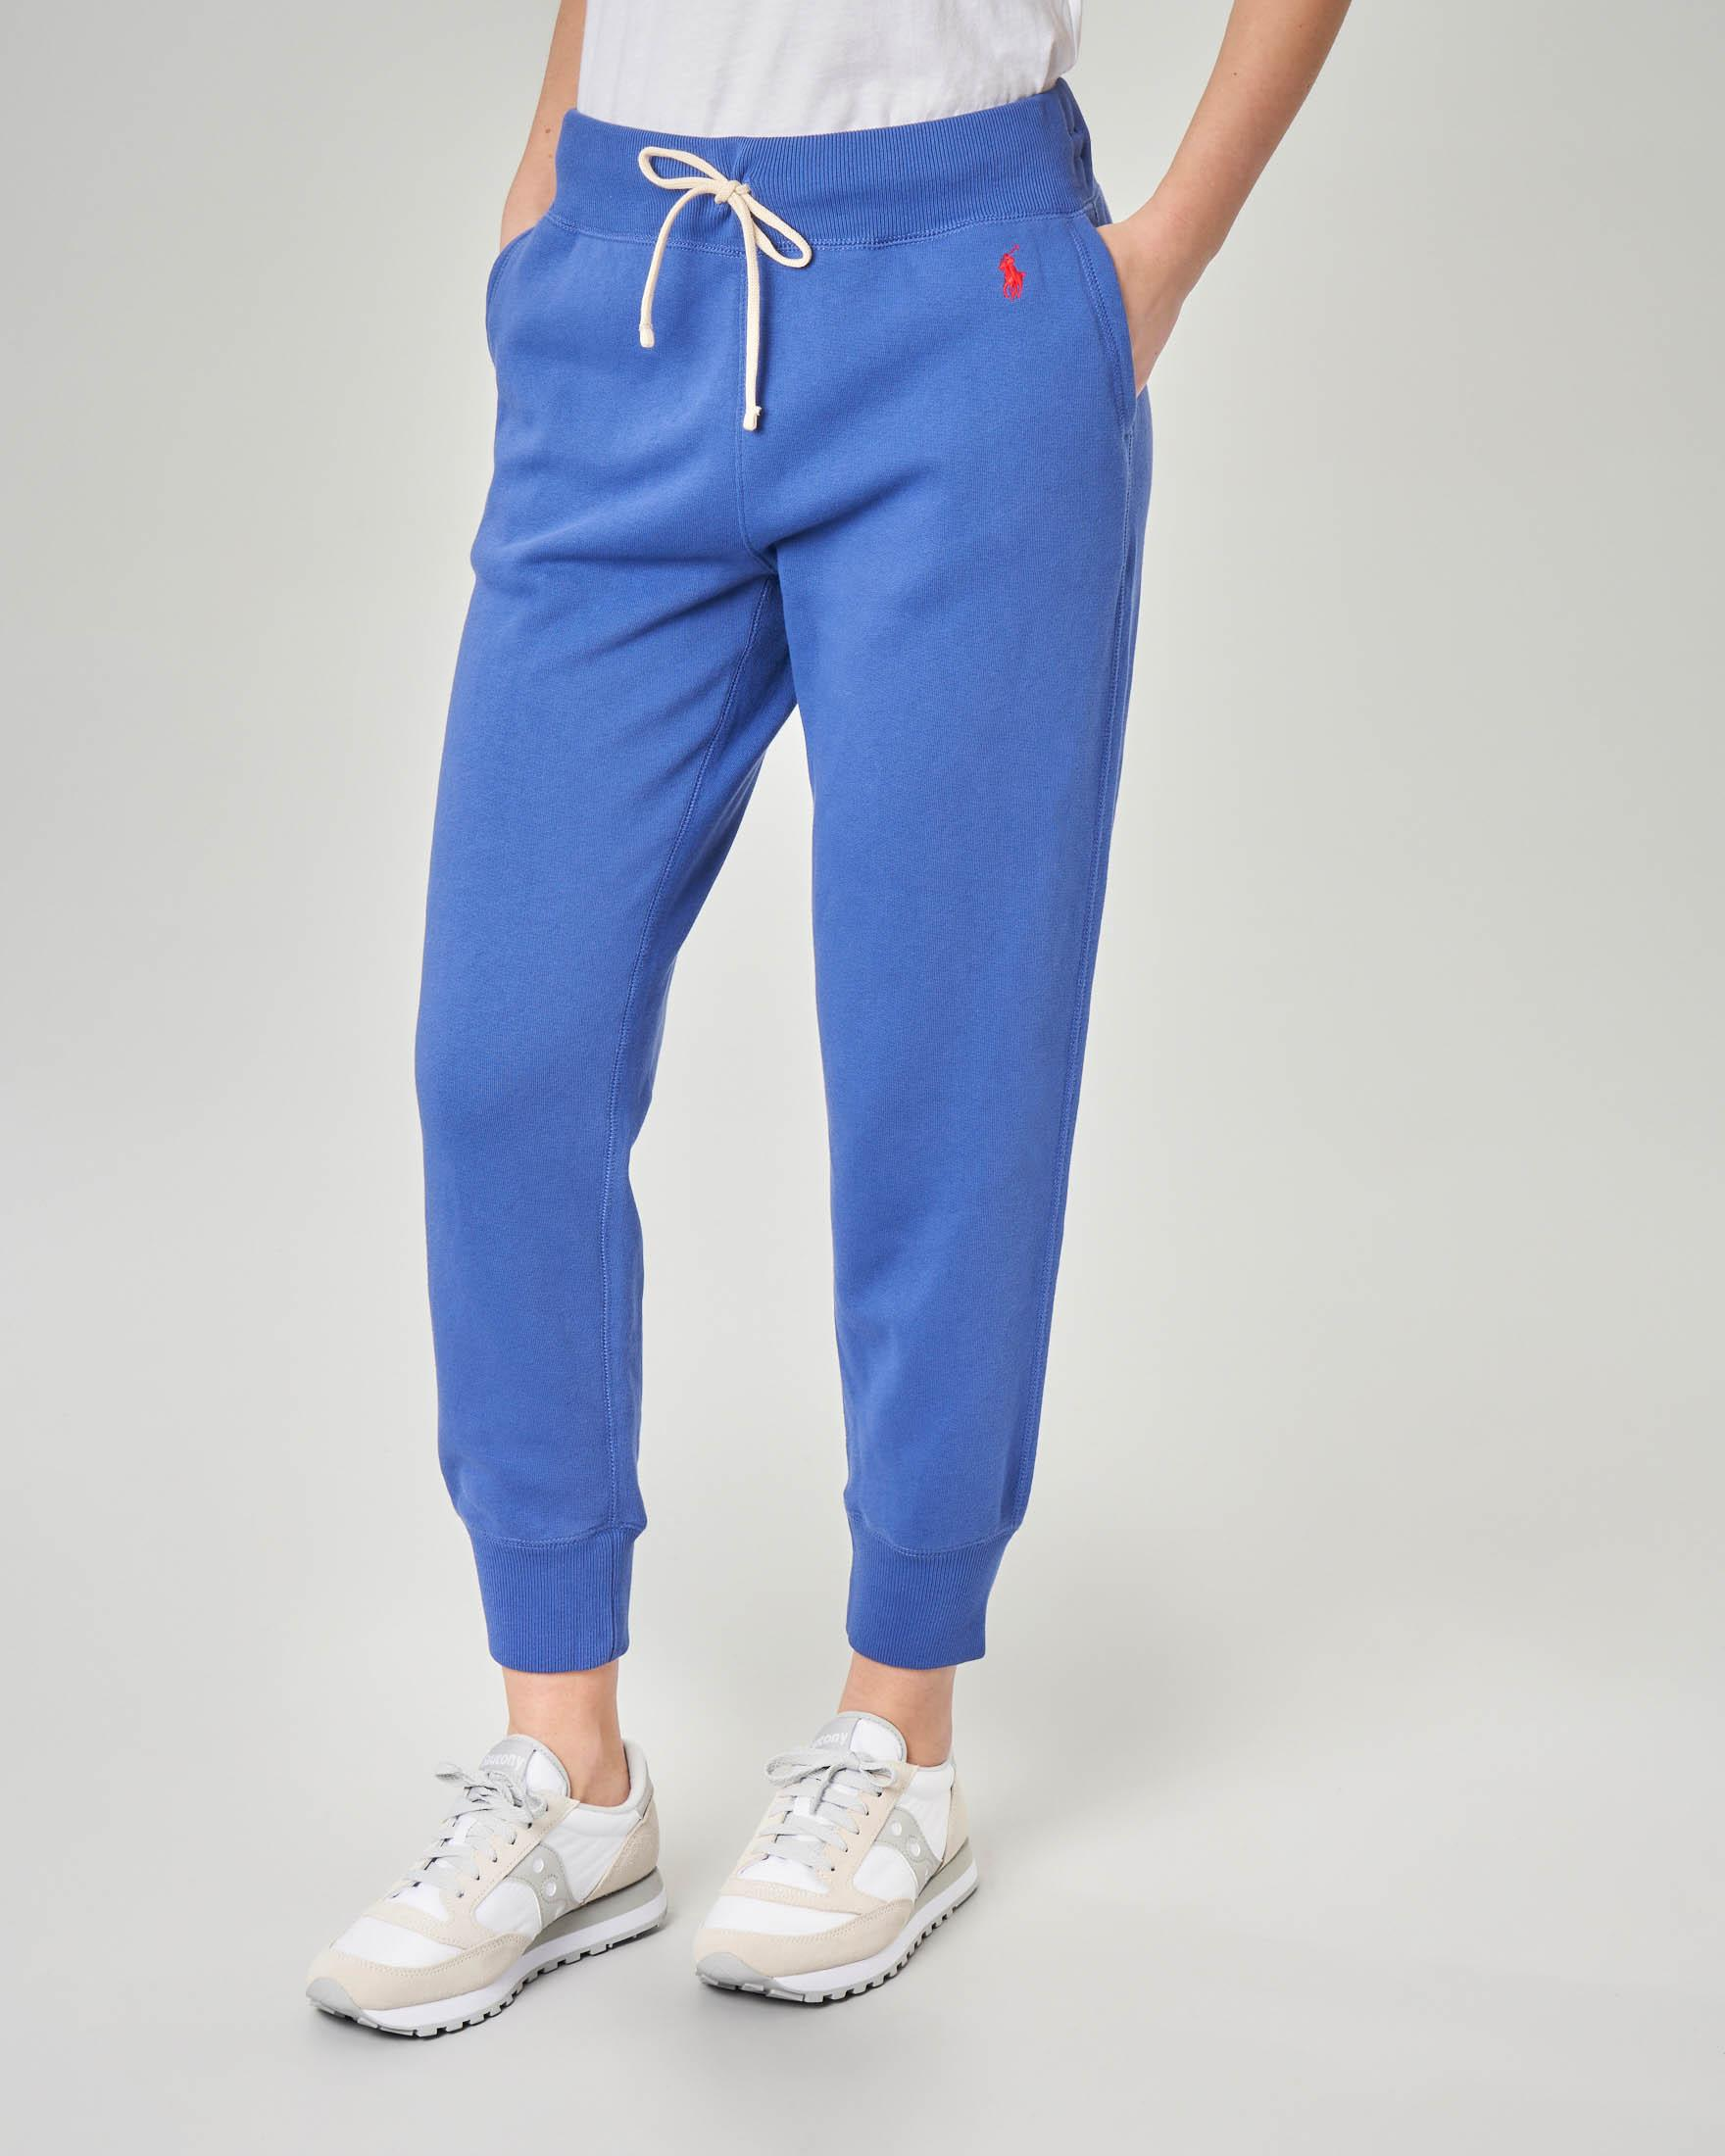 Pantaloni in felpa blu royal